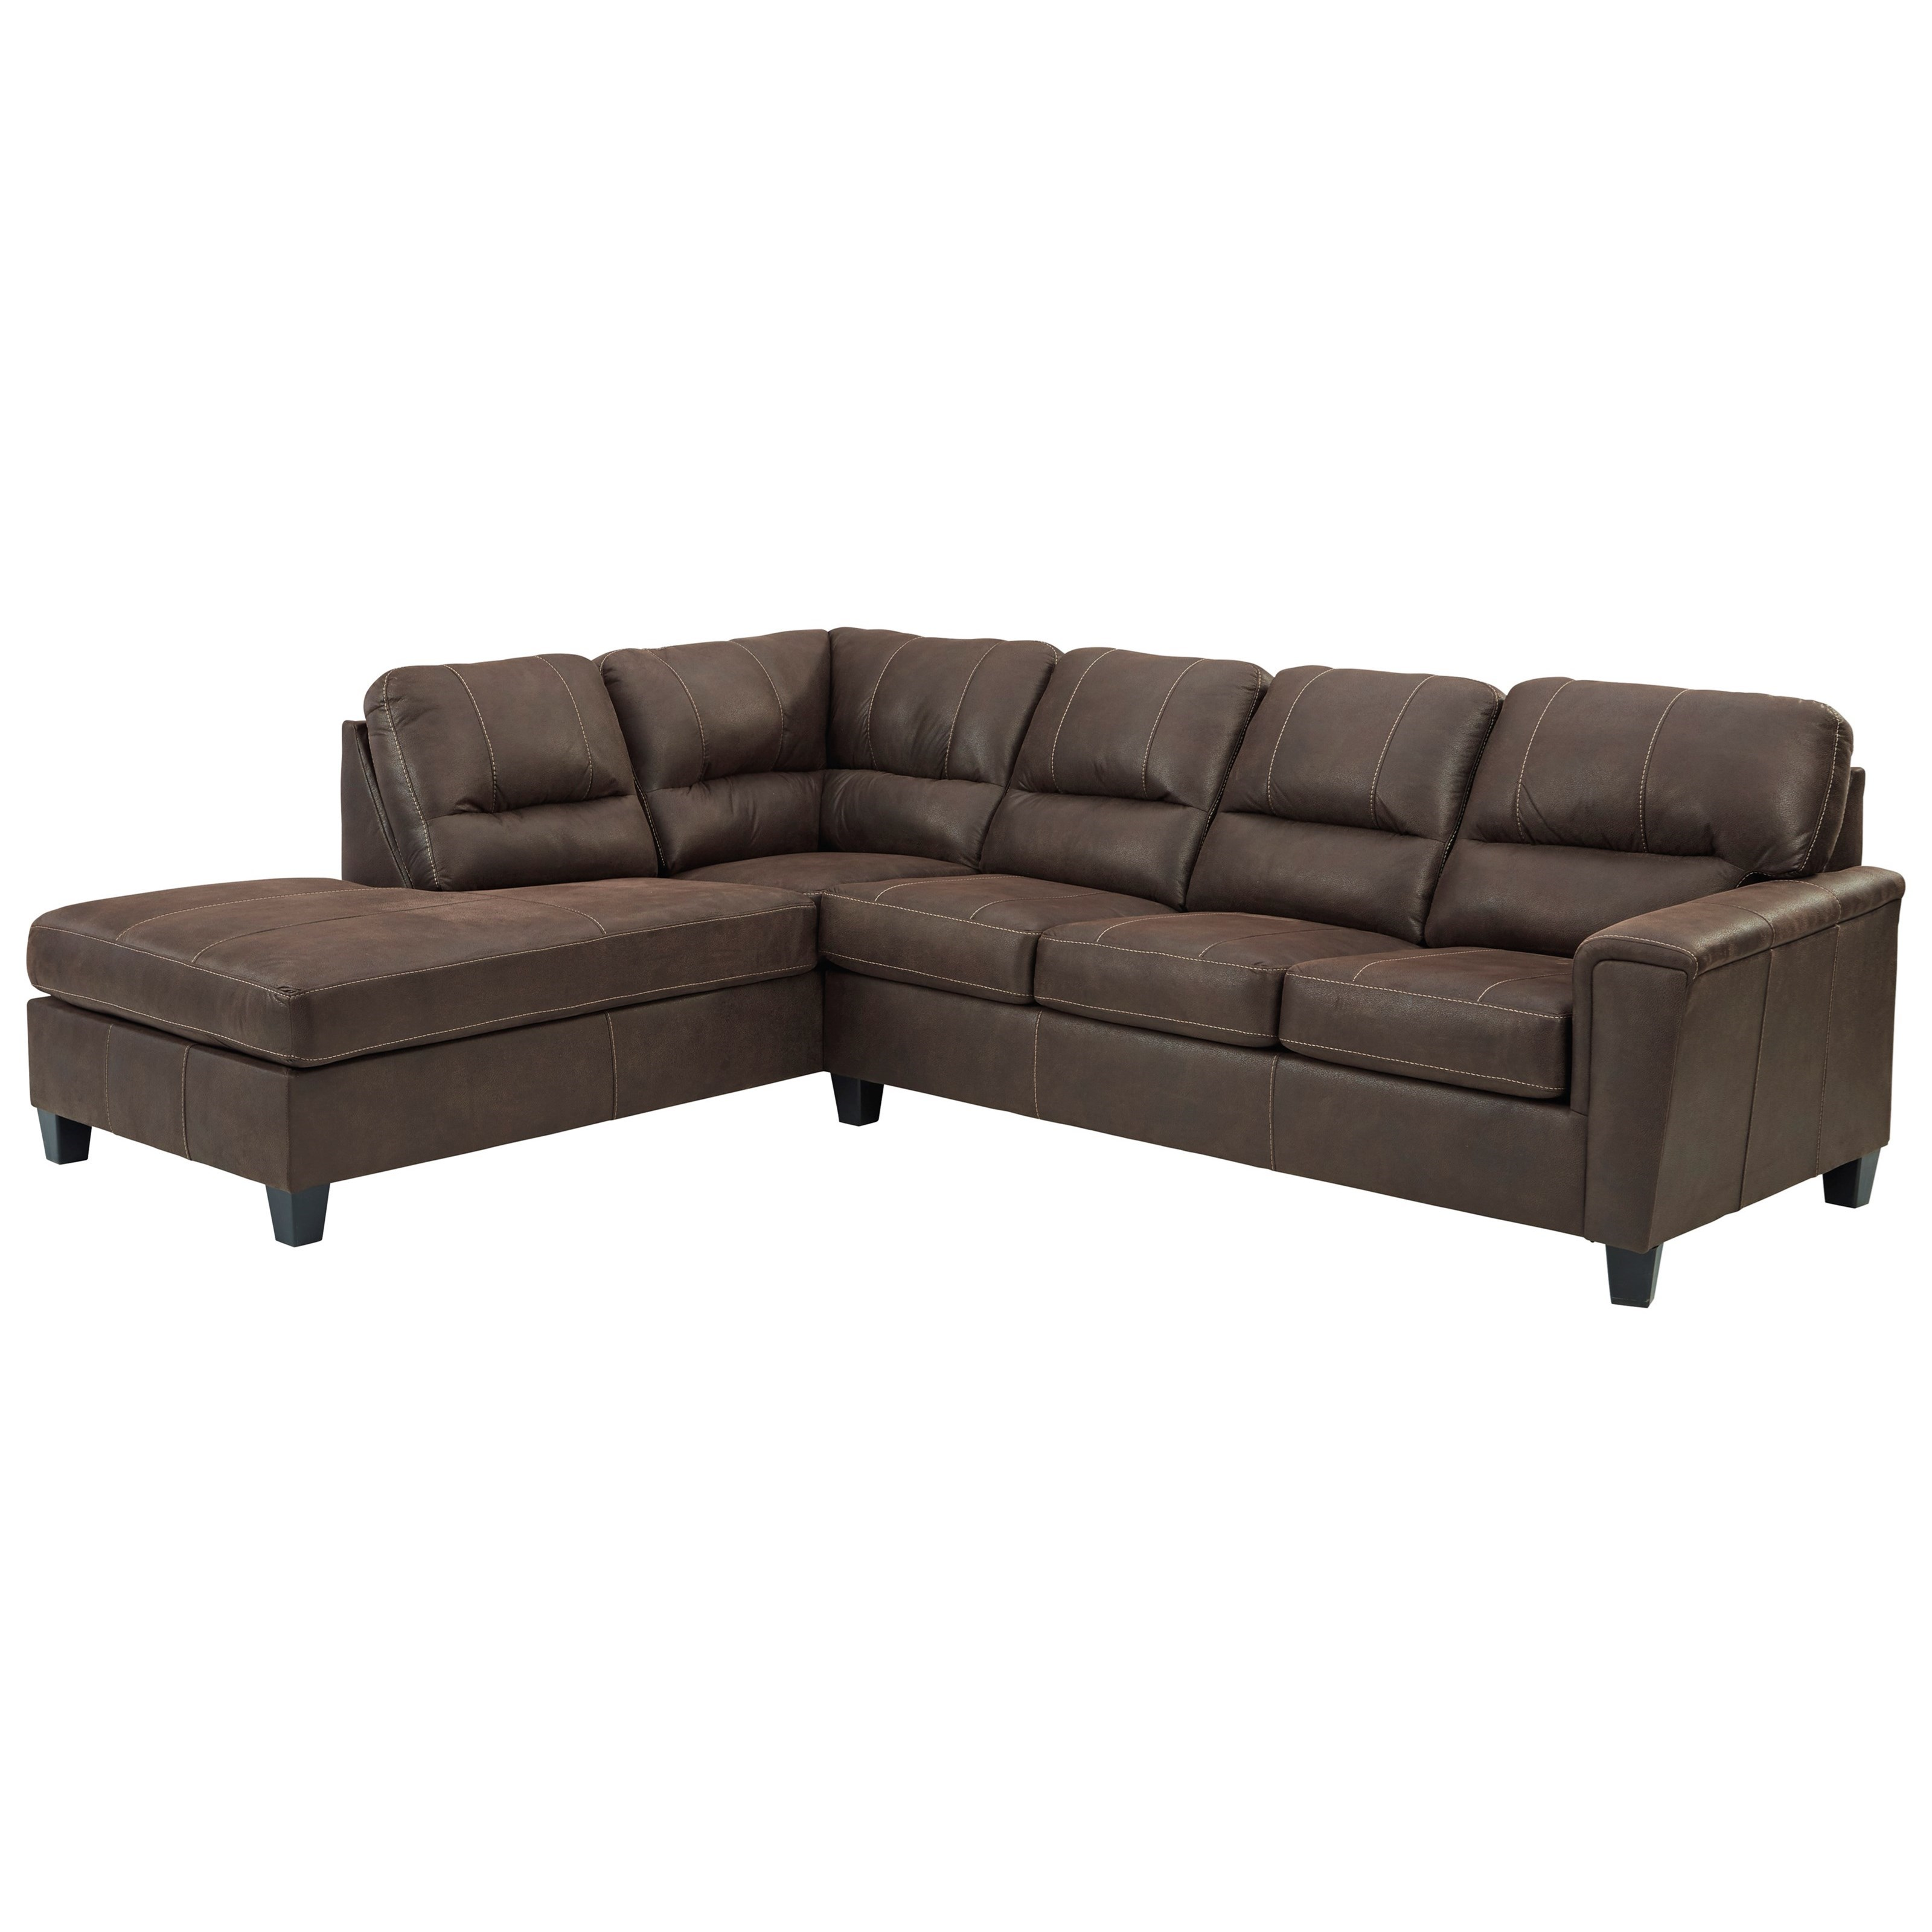 Nash Chestnut 2-Piece Sectional w/ Left Chaise & Sleeper by Signature at Walker's Furniture